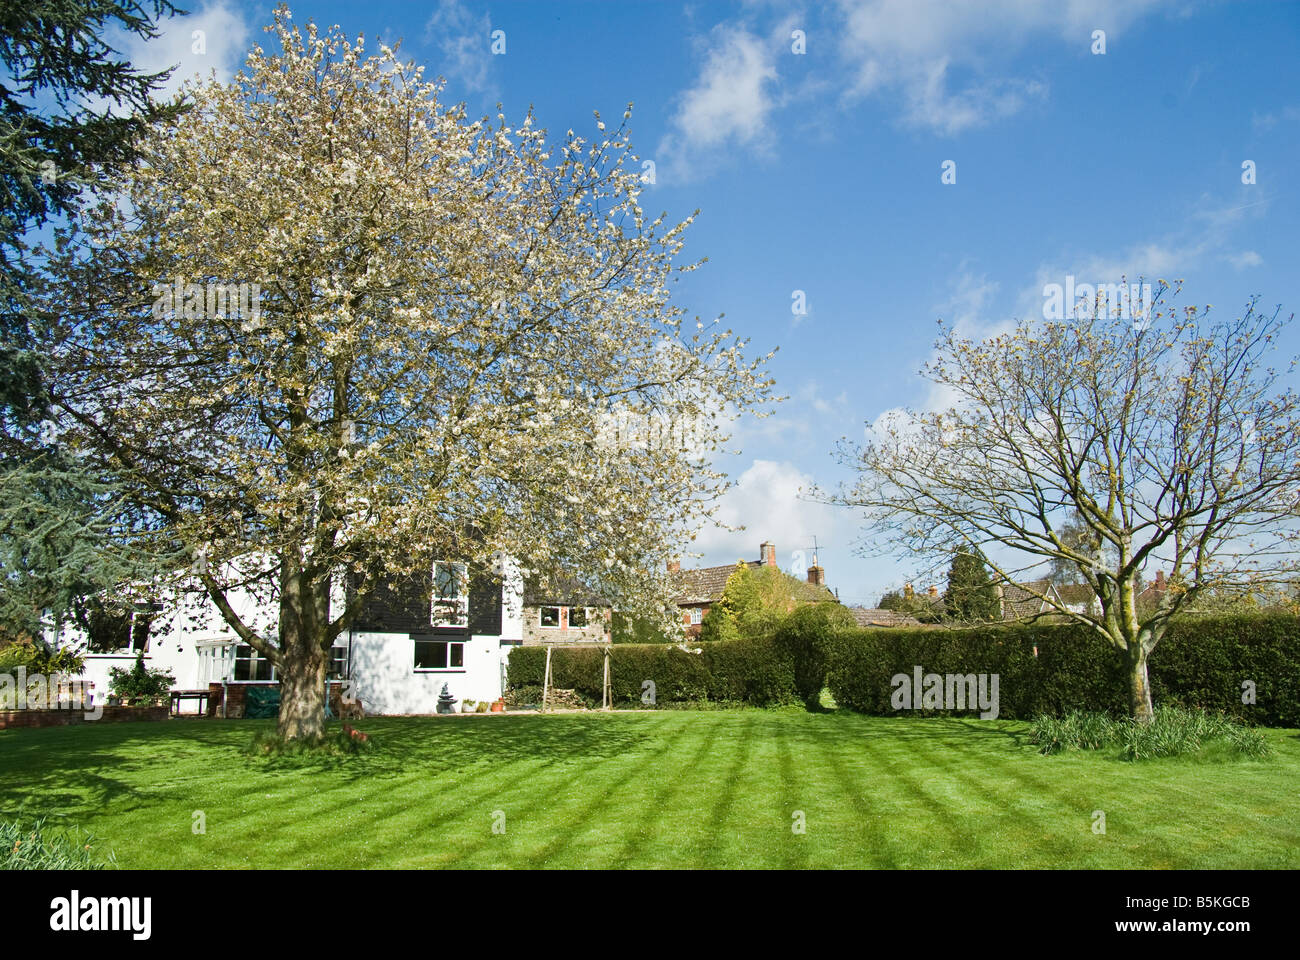 A spring garden with flowering wild cherry and newly mown lawnt - Stock Image